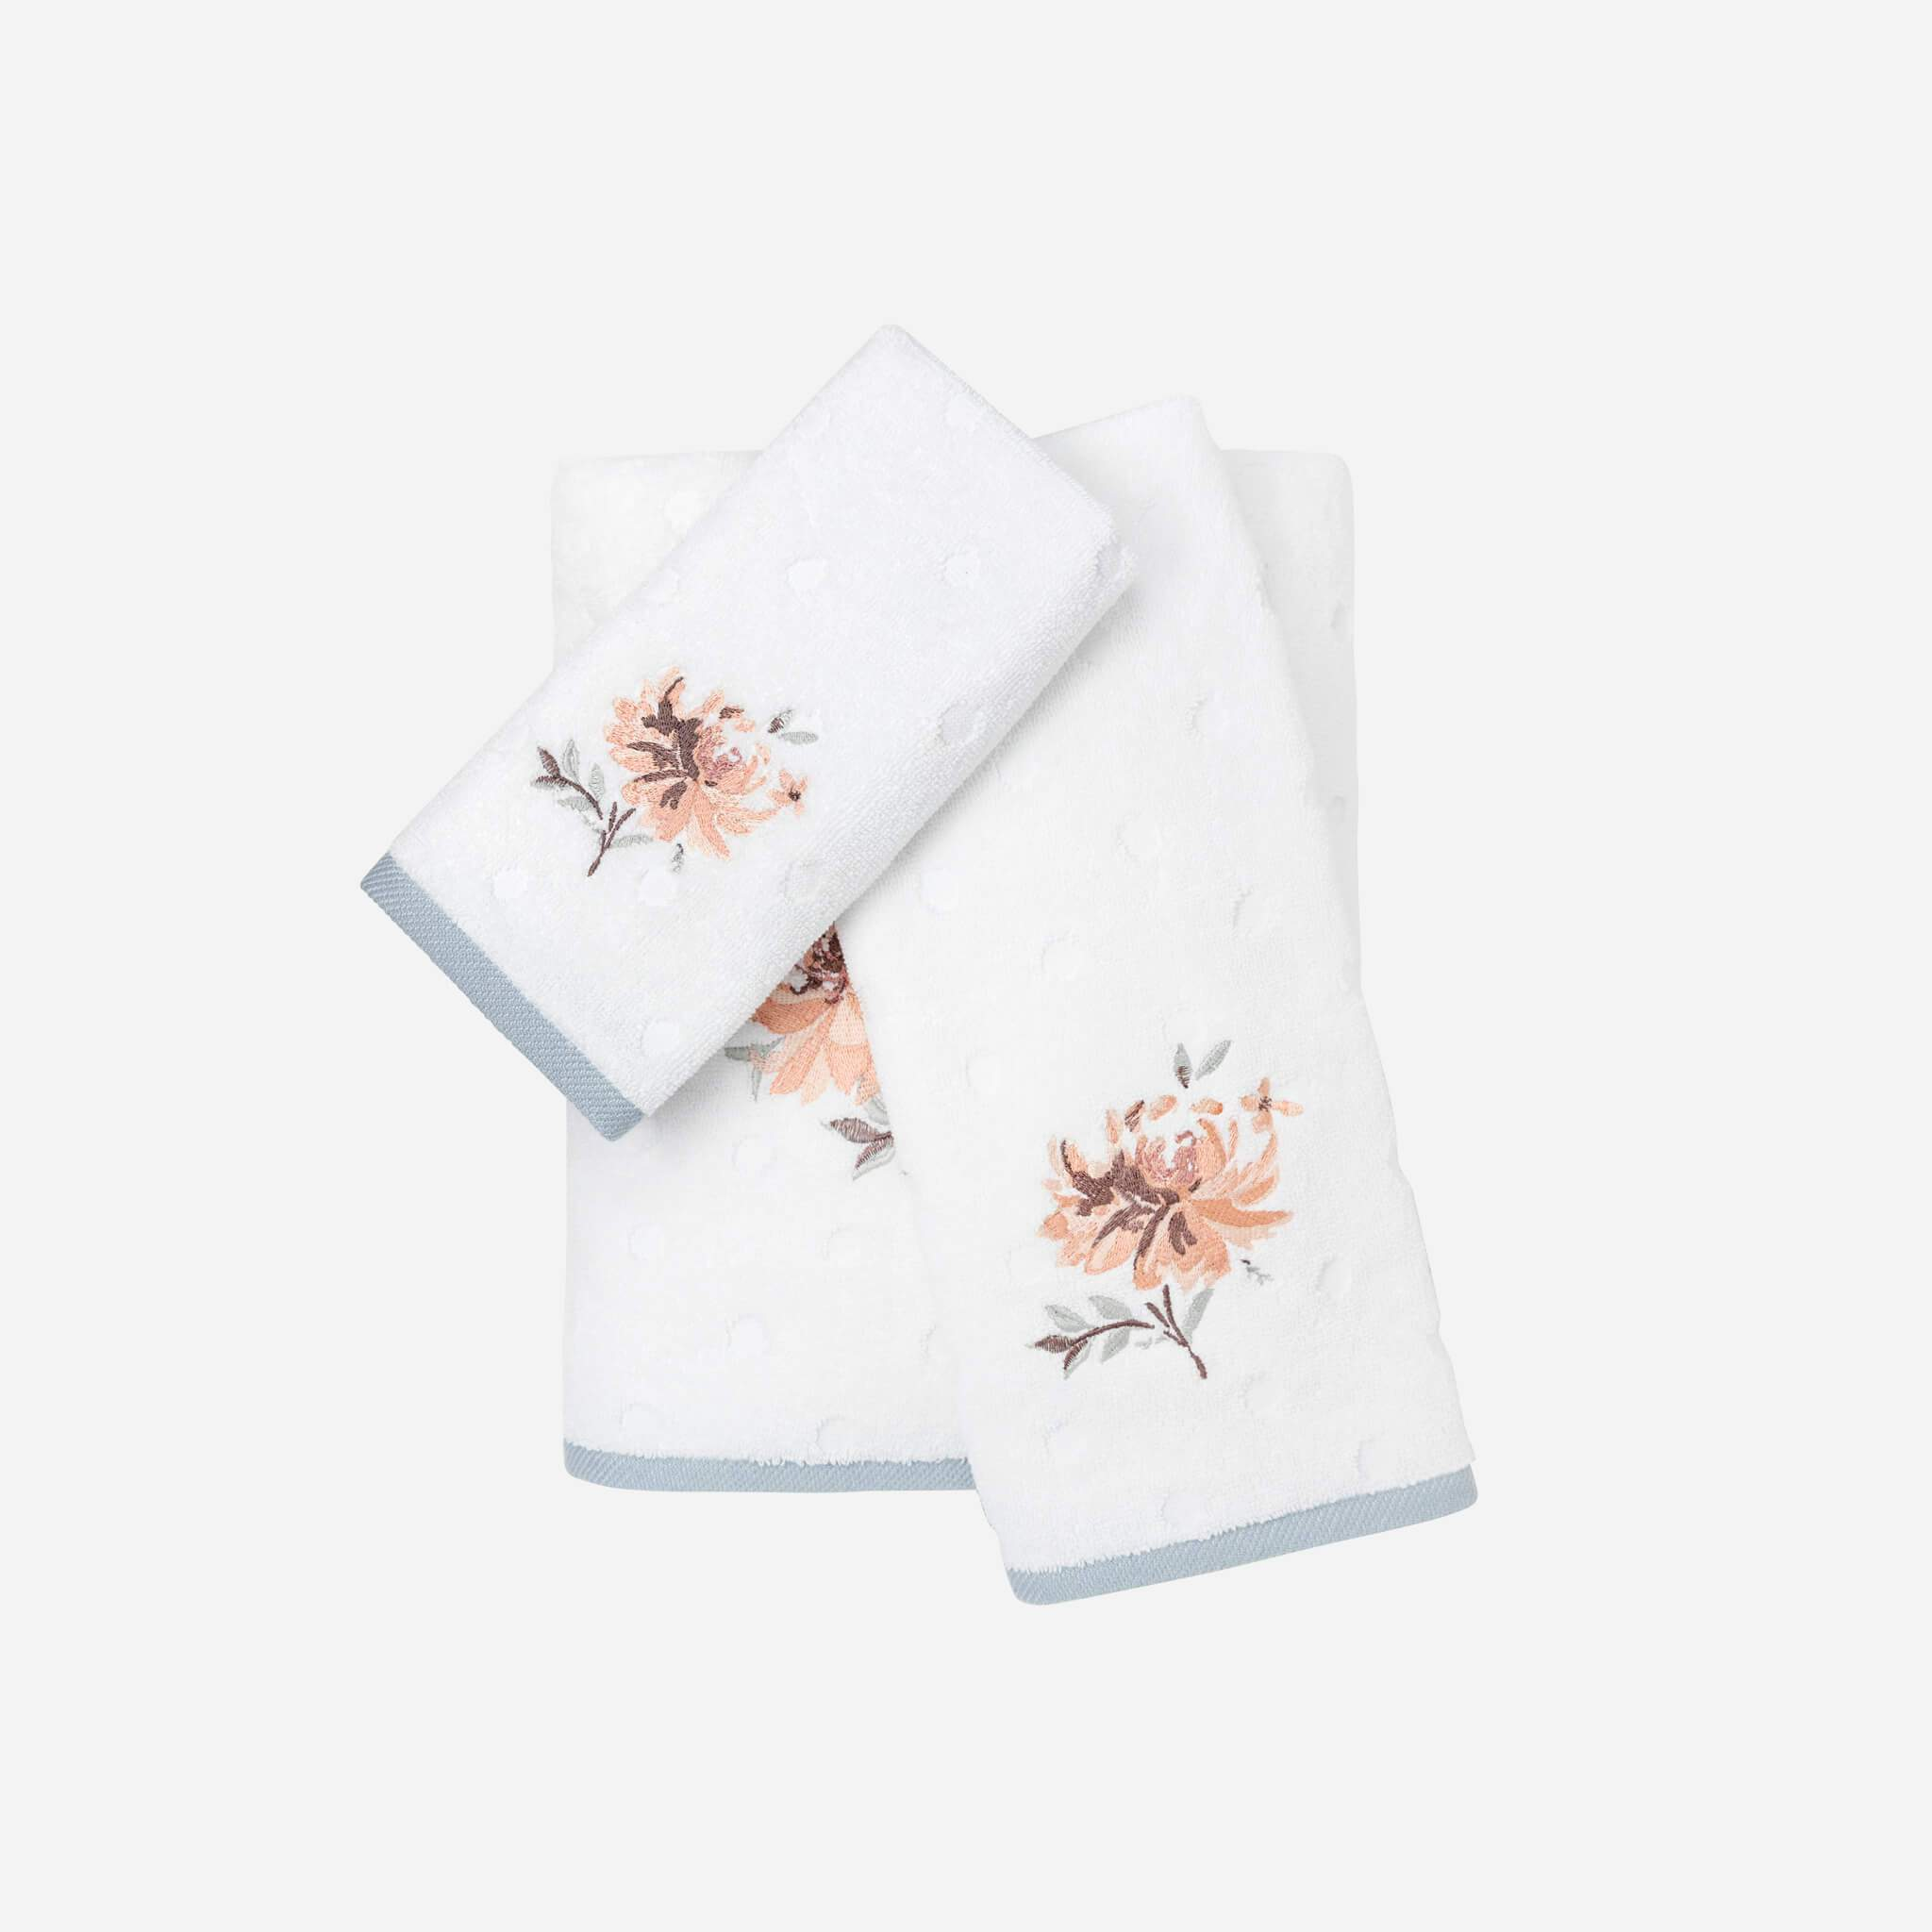 Liana Bath Towel